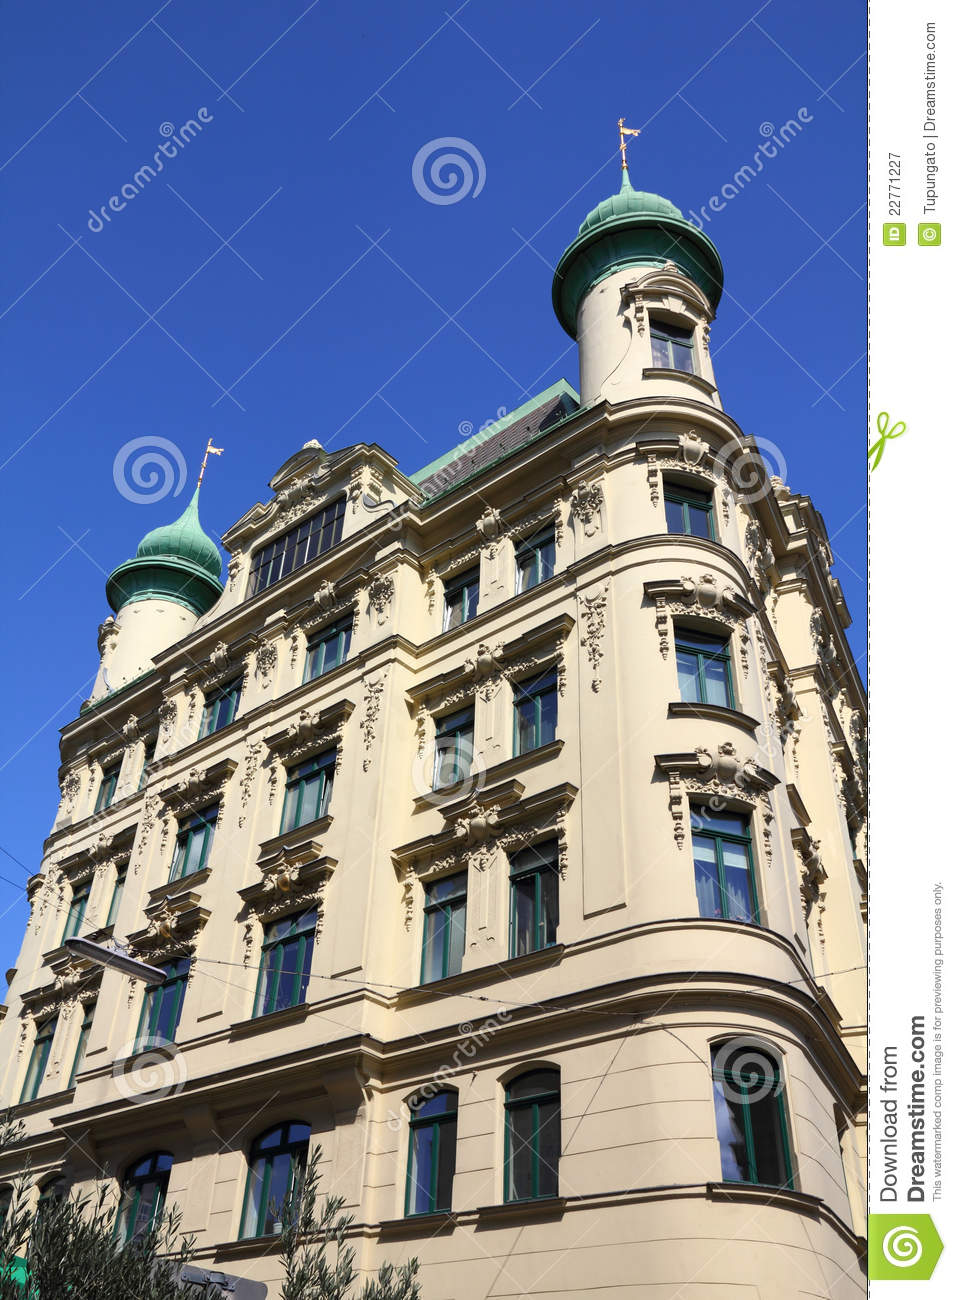 Vienna architecture royalty free stock photography image for Architecture vienne